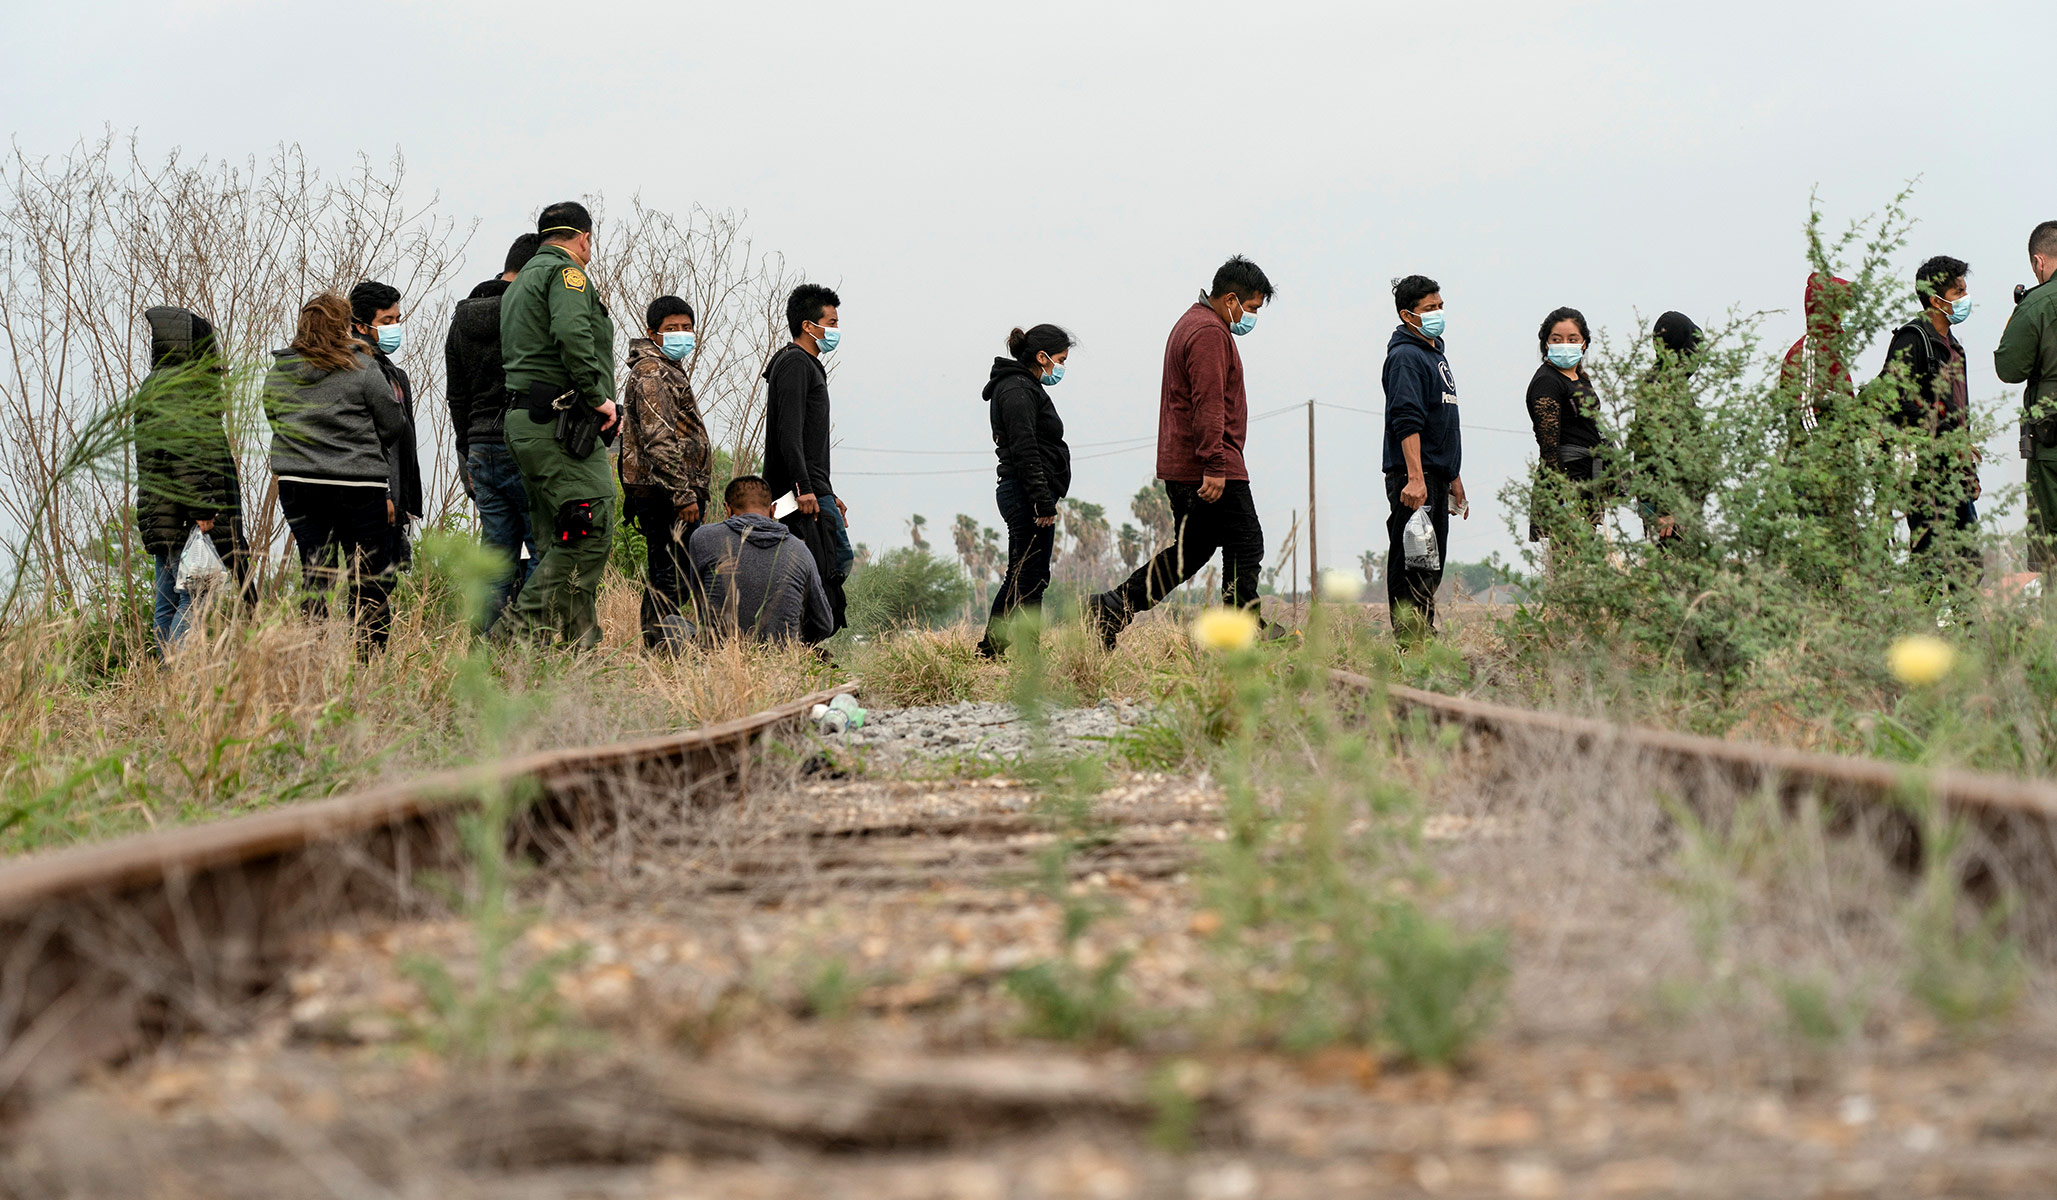 Immigration Policy: Amnesty Unfair to Legal Immigrants